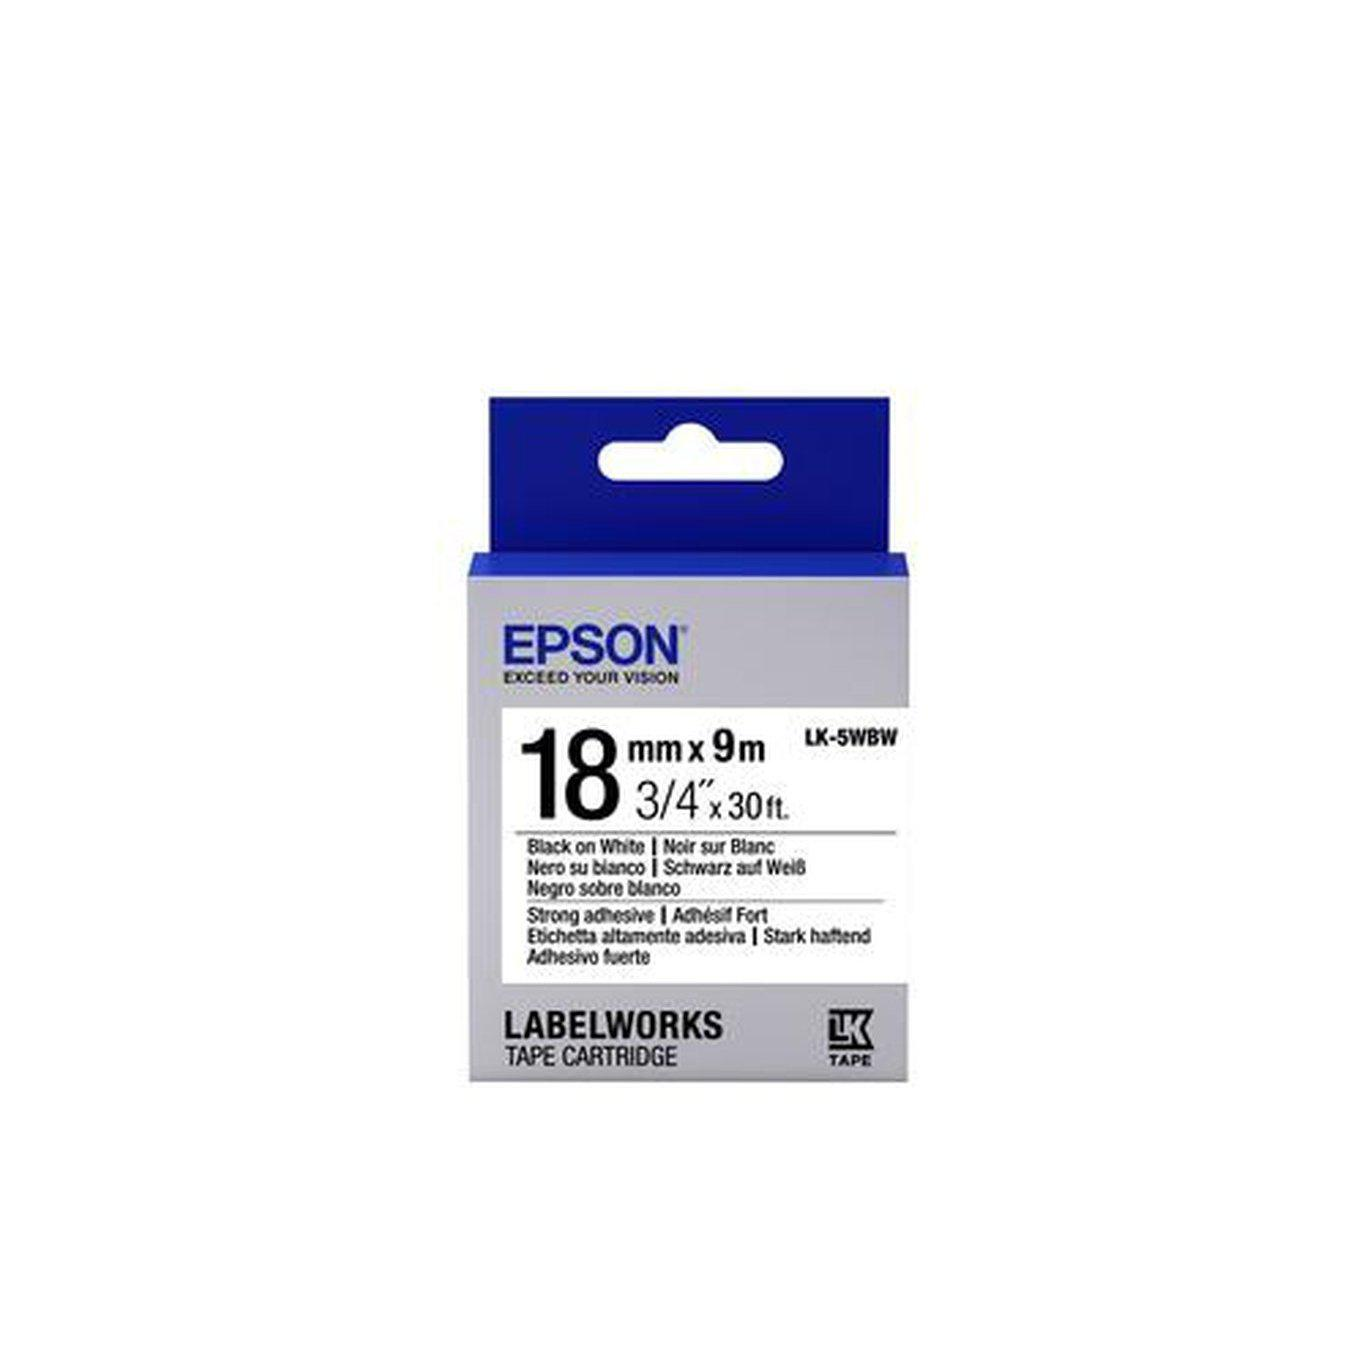 Epson Label Cartridge Strong Adhesive LK-5WBW 18mm x 9m, Black on White | C53S655012 Consumable Epson